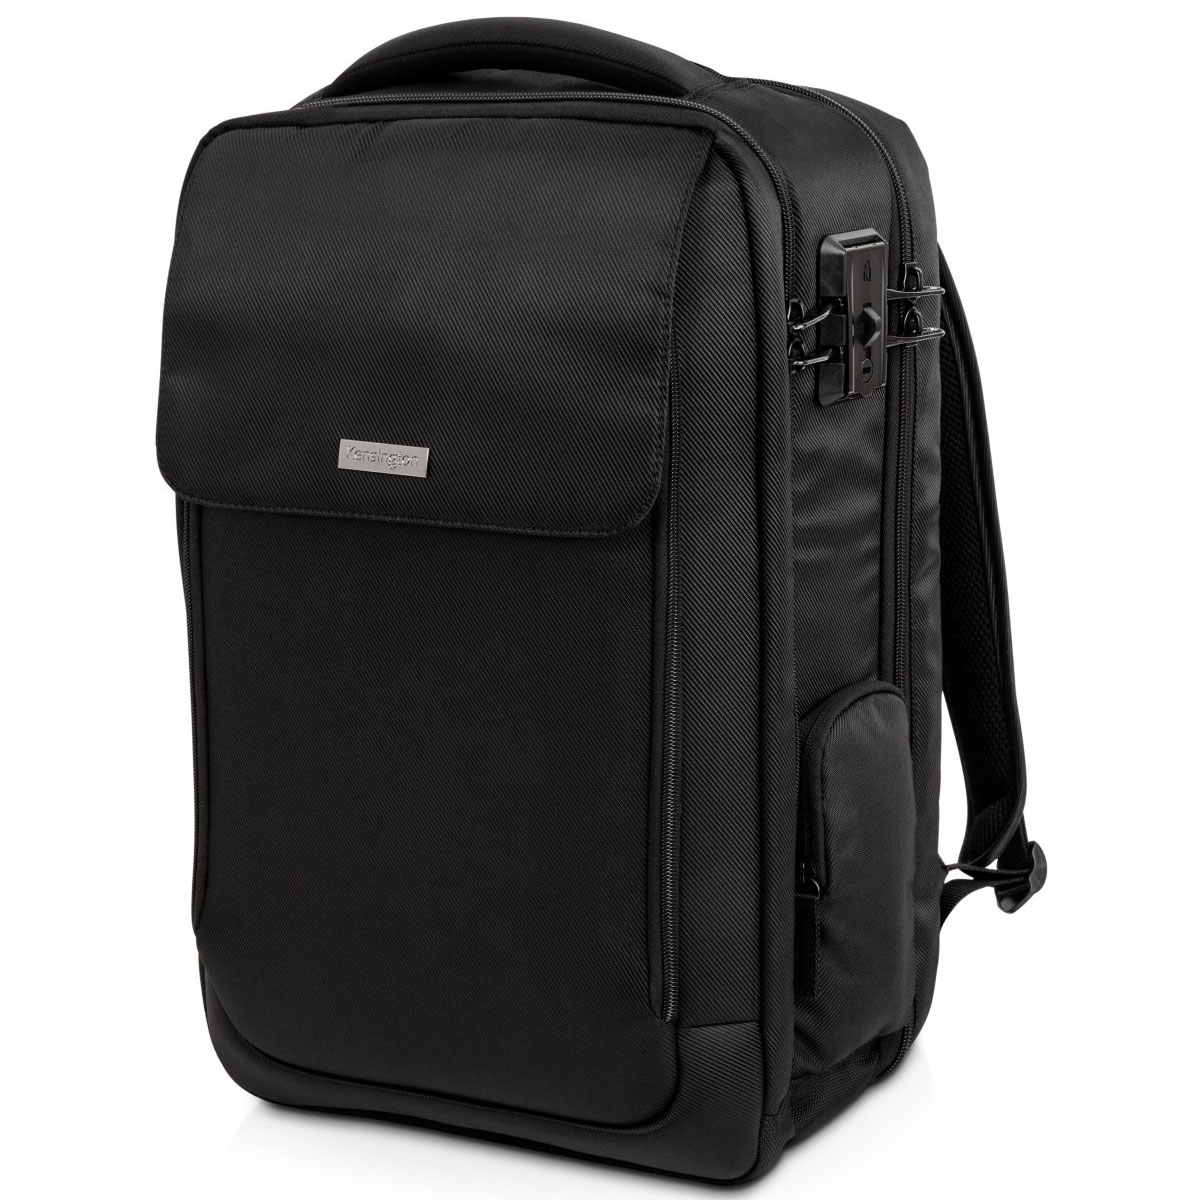 kensington securetrek backpack 17 sac sacoche housse kensington sur. Black Bedroom Furniture Sets. Home Design Ideas